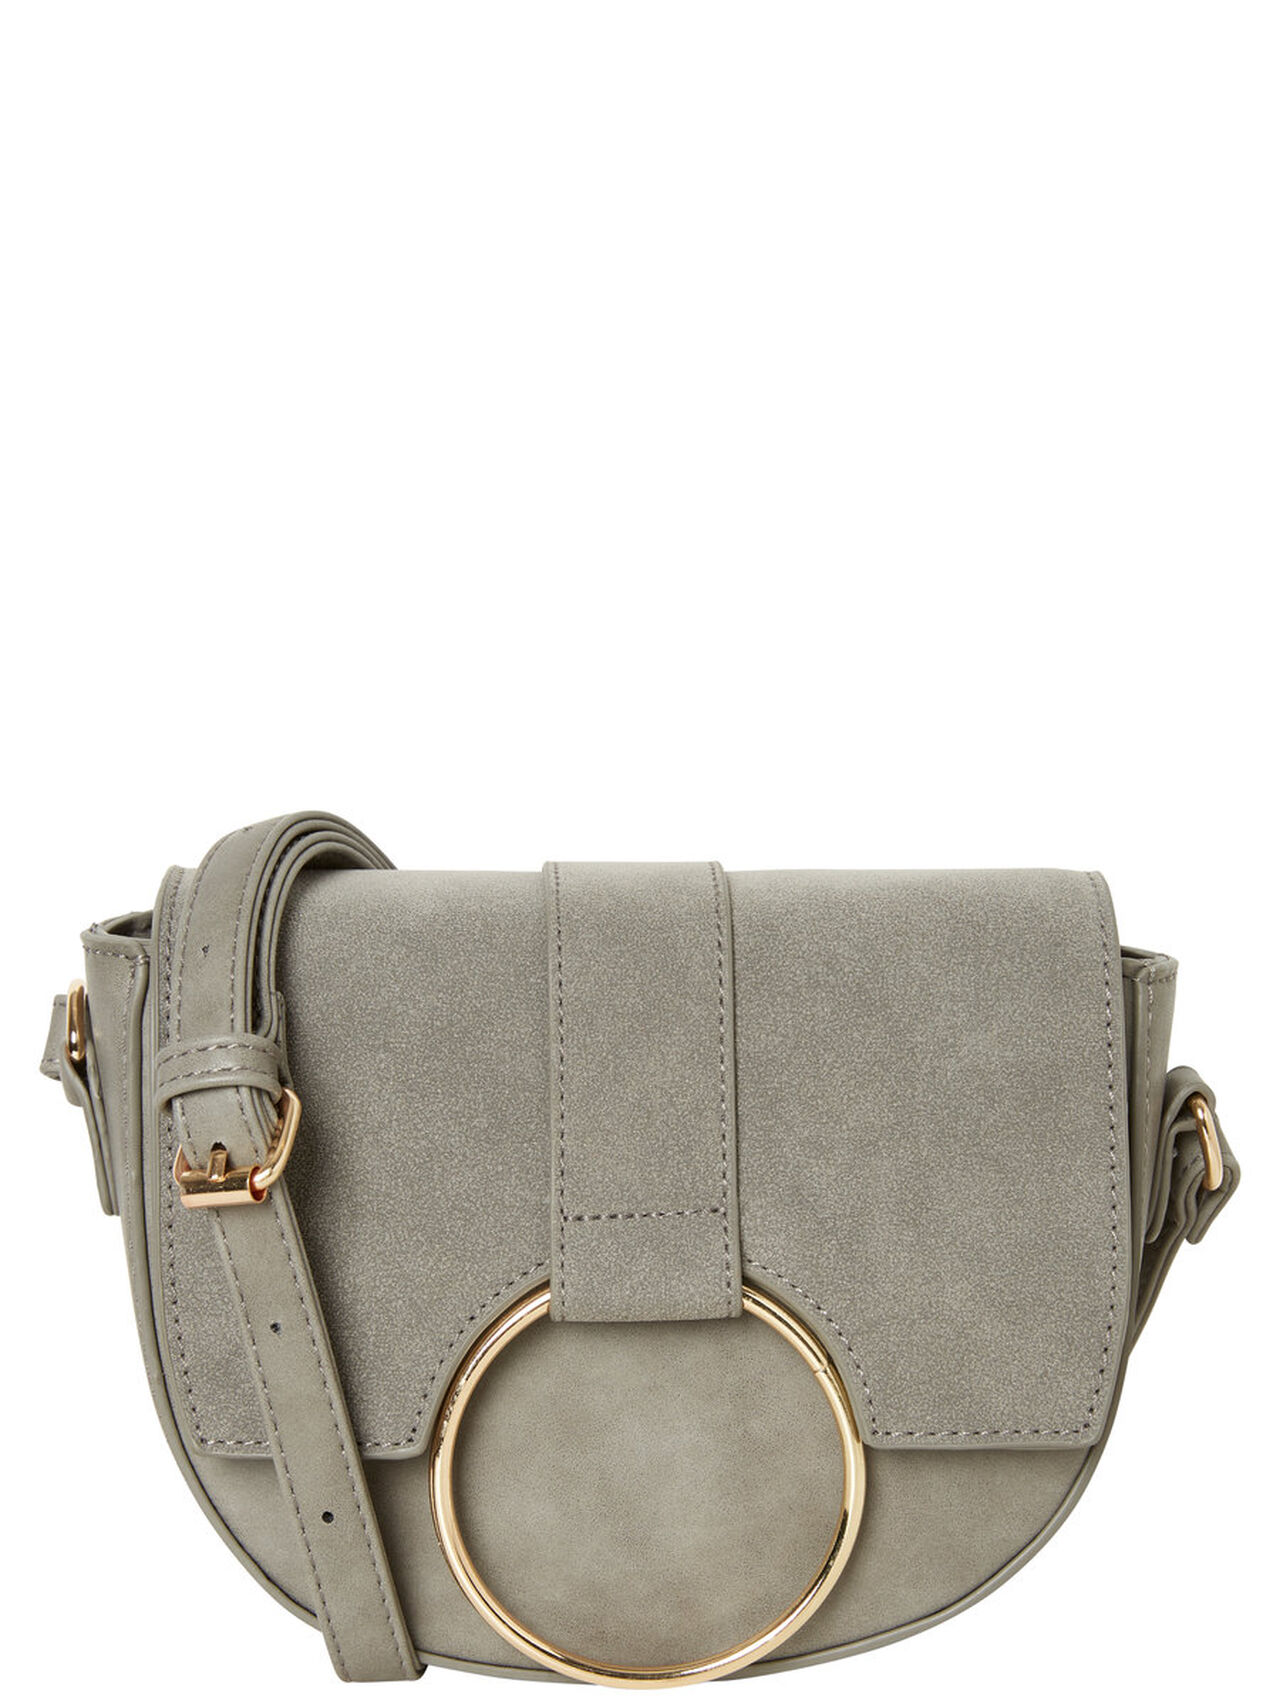 VERO MODA Small Shoulder Bag Women Grey